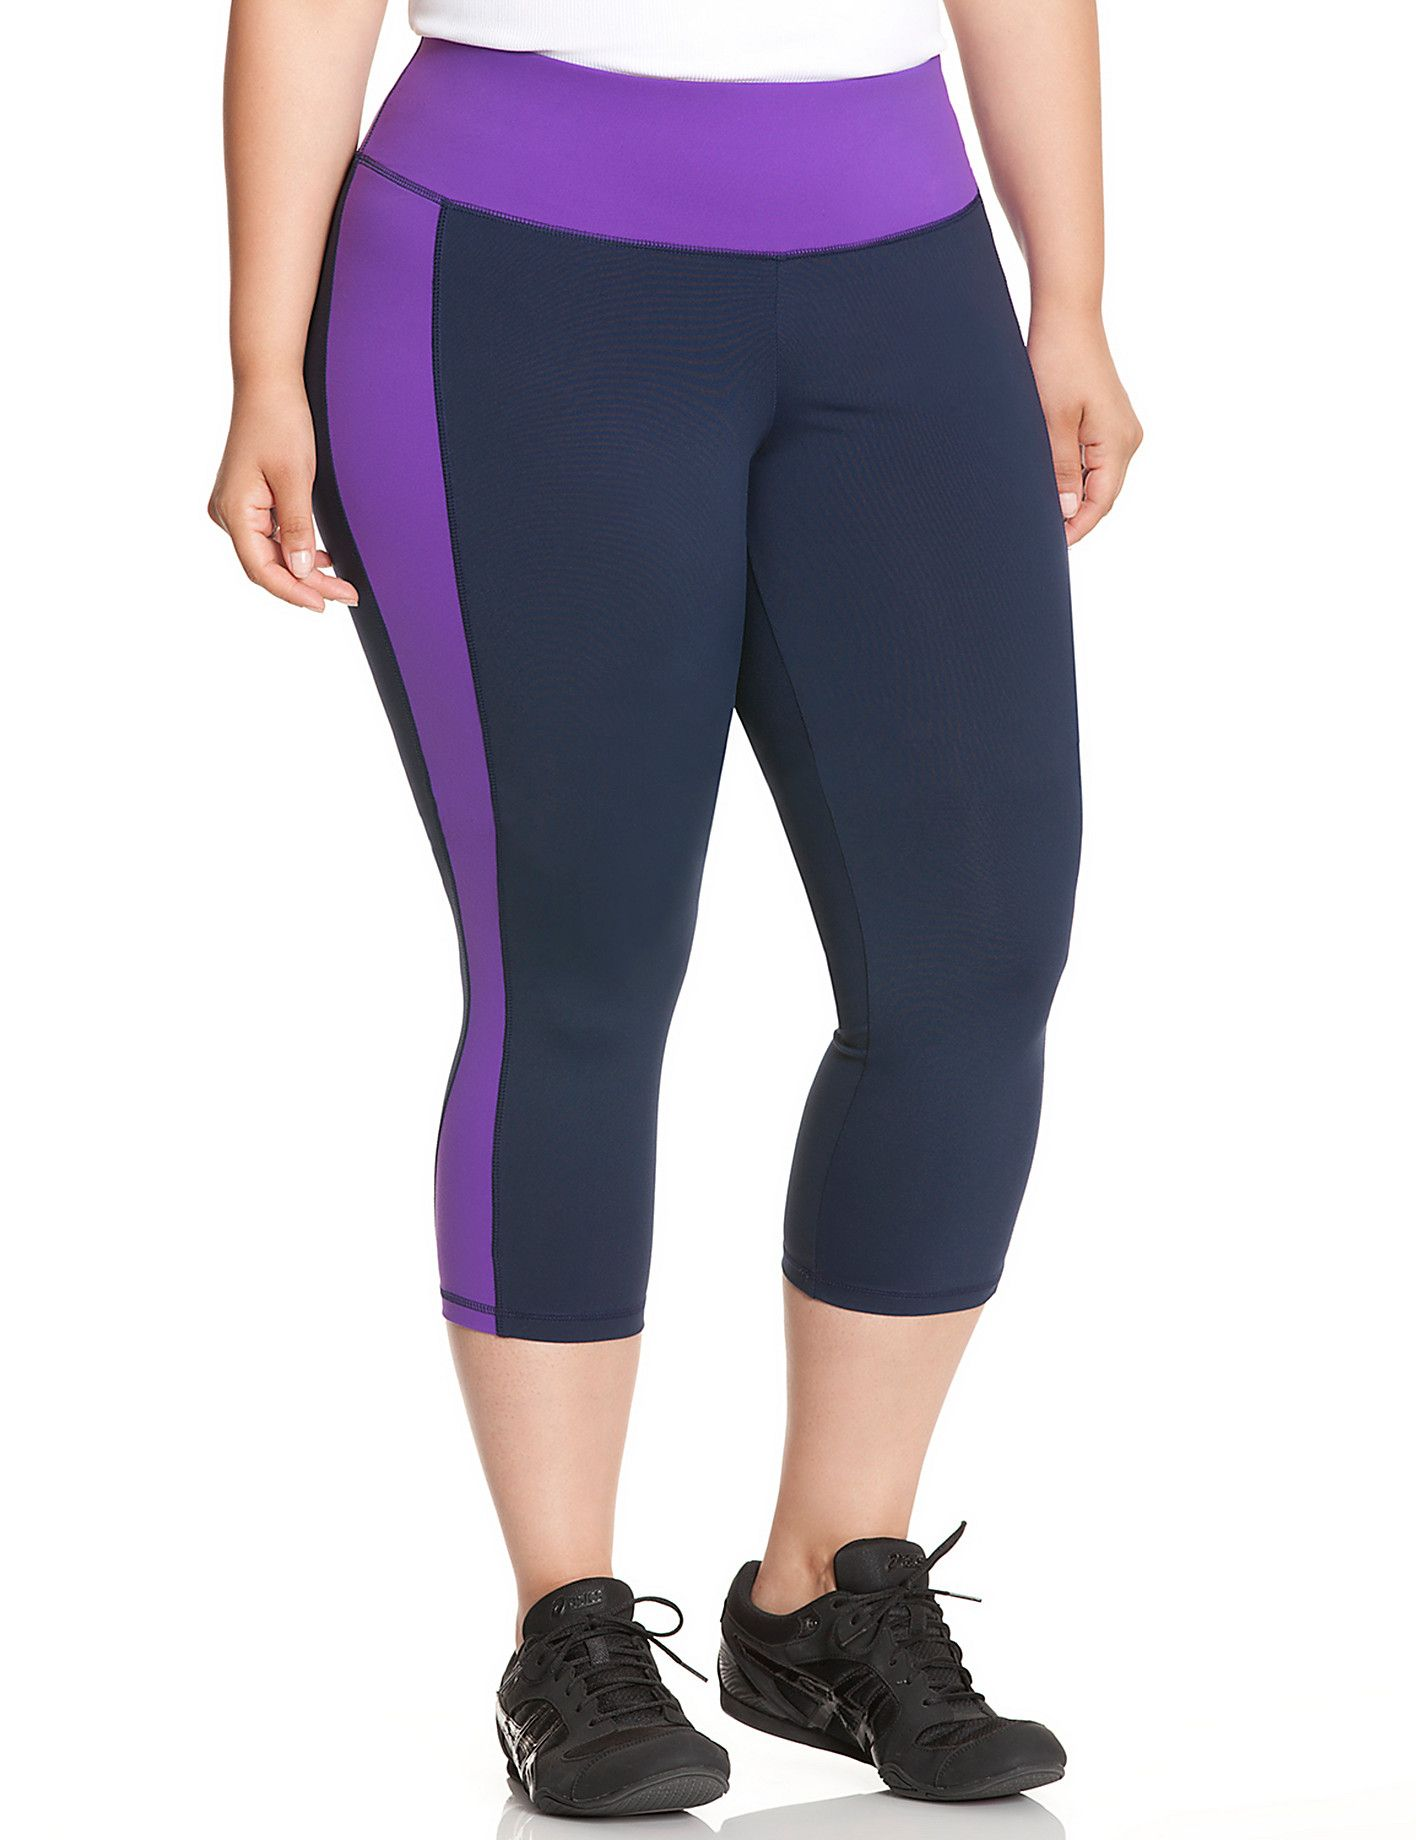 72a74a329be TruDry colorblock capri legging by Lane Bryant